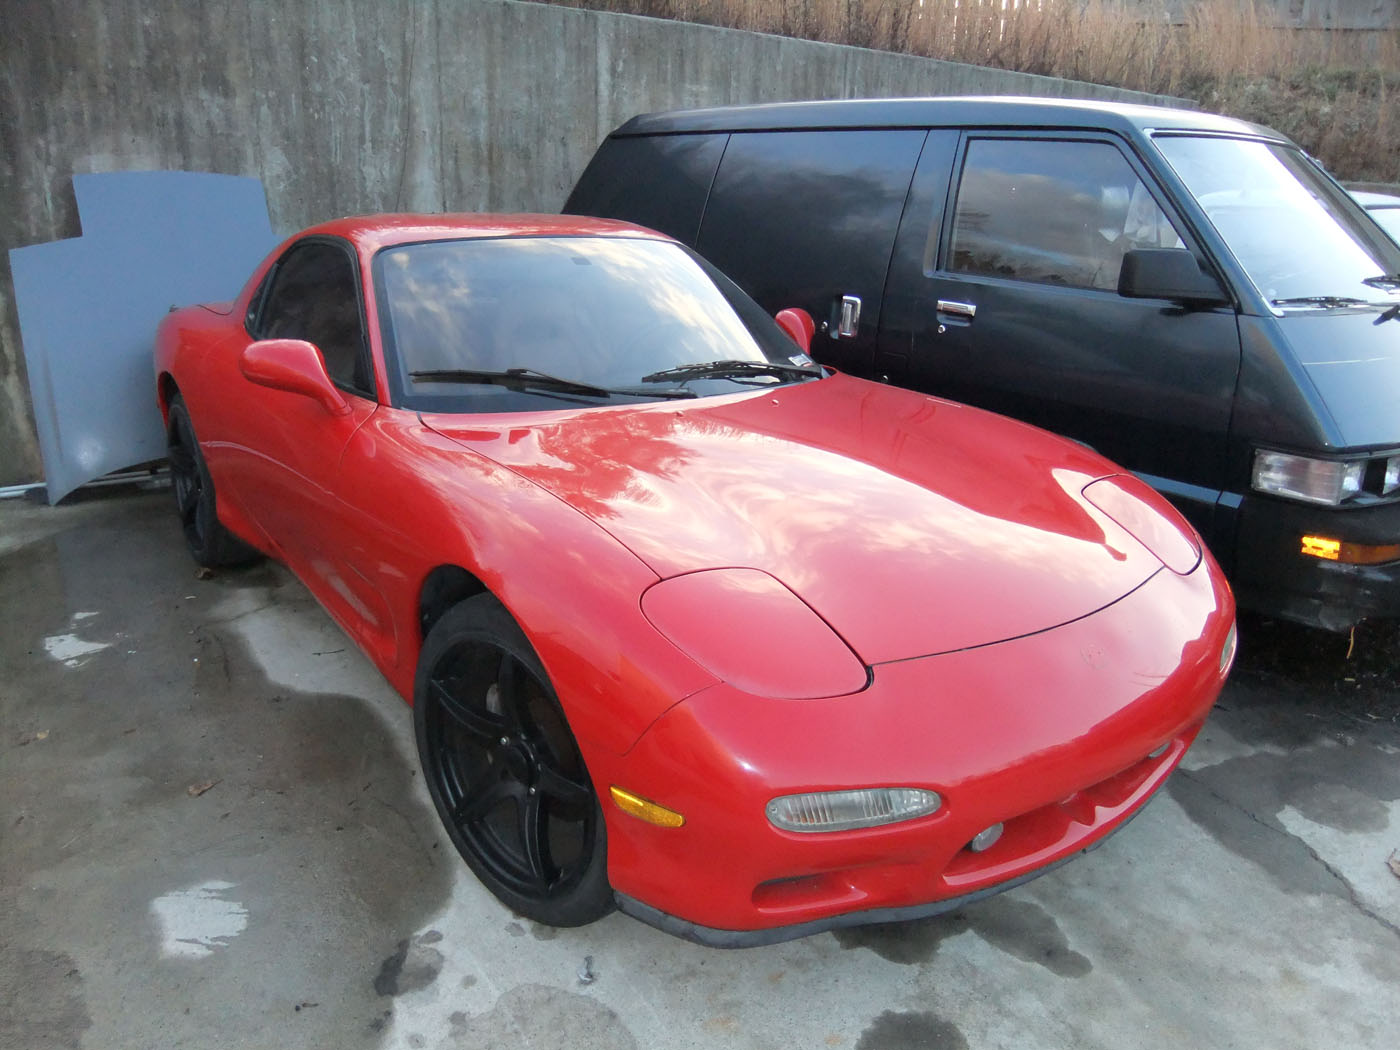 1993 Mazda Rx7 With Bad Motor But Super Clean In Atl